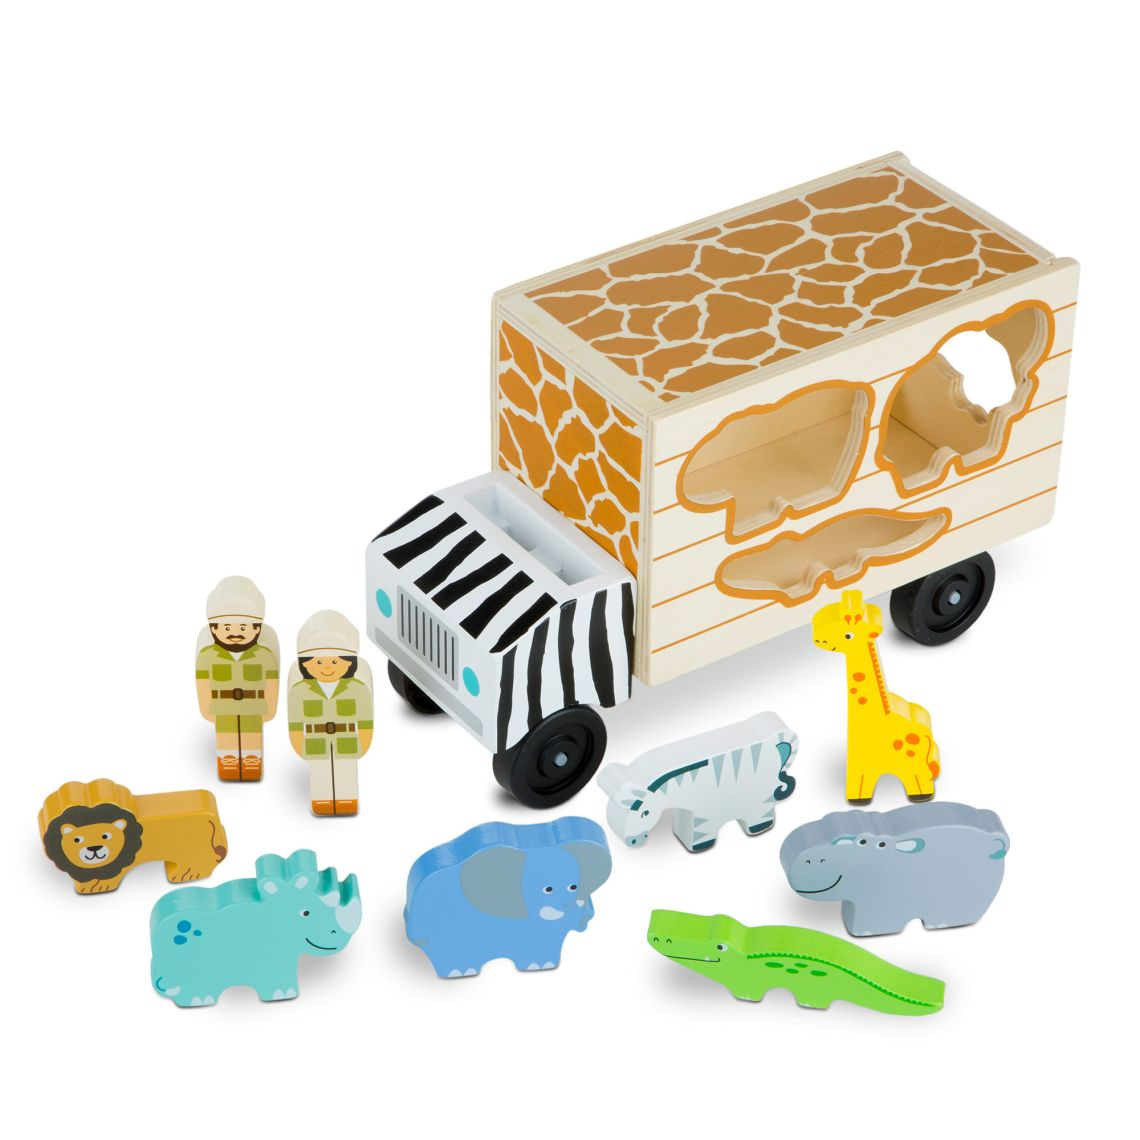 Awesome Melissa And Doug Kitchen Accessory Set Pictures - Best ...